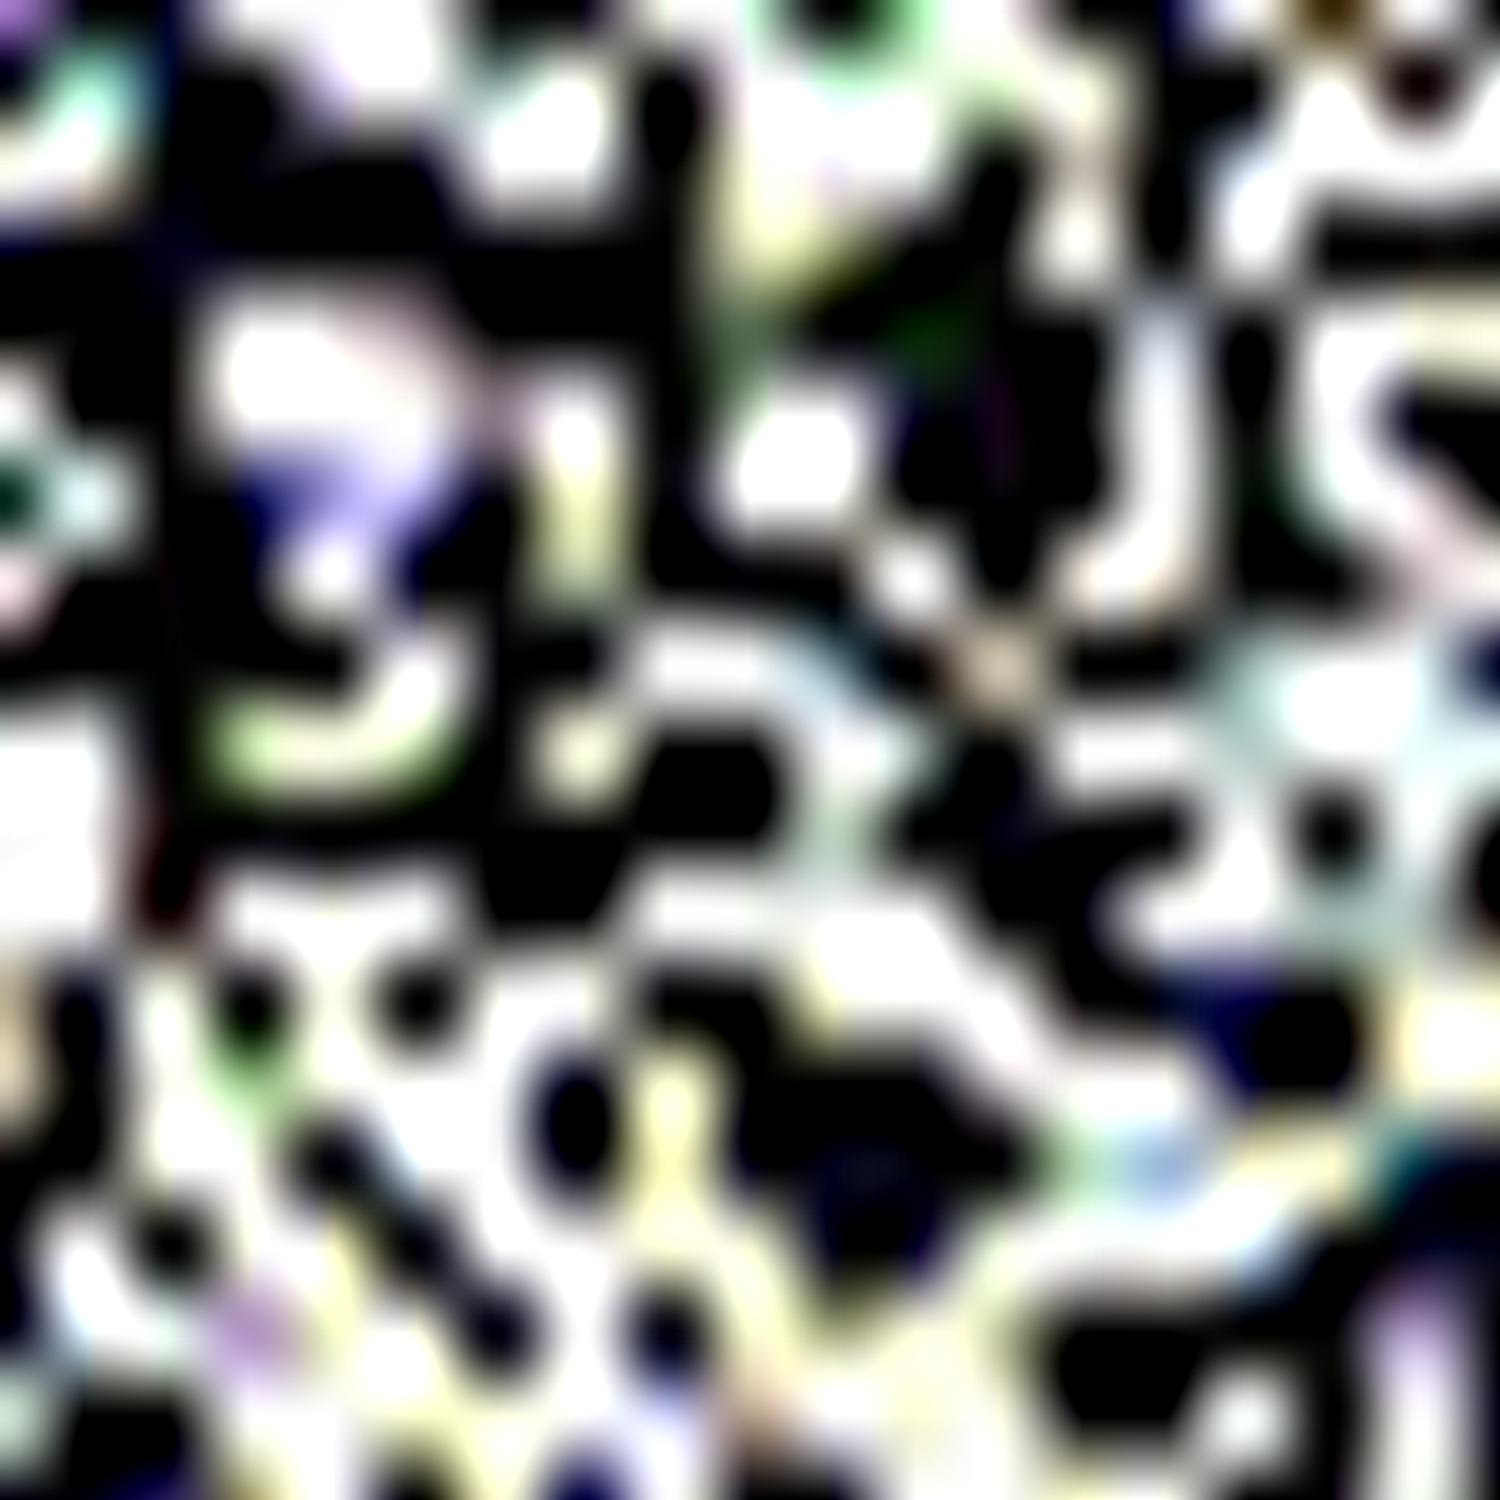 - Here's a pixel-level close-up of the image above. Since it's like a halftone -- mainly black and white dots -- there's no way to work on improving the brightness and contrast. - noiseograph noiseography a photograph created from noise Panasonic DMC-FZ5 urusai is a measure of the quality of the digital noise in an image, the same way that bokeh is a measure of the quality of the out of focus areas of an image - Tony Karp, design, art, photography, techno-impressionist, techno-impressionism, aerial photography , drone , drones , dji , mavic pro , video , 3D printing - Books -